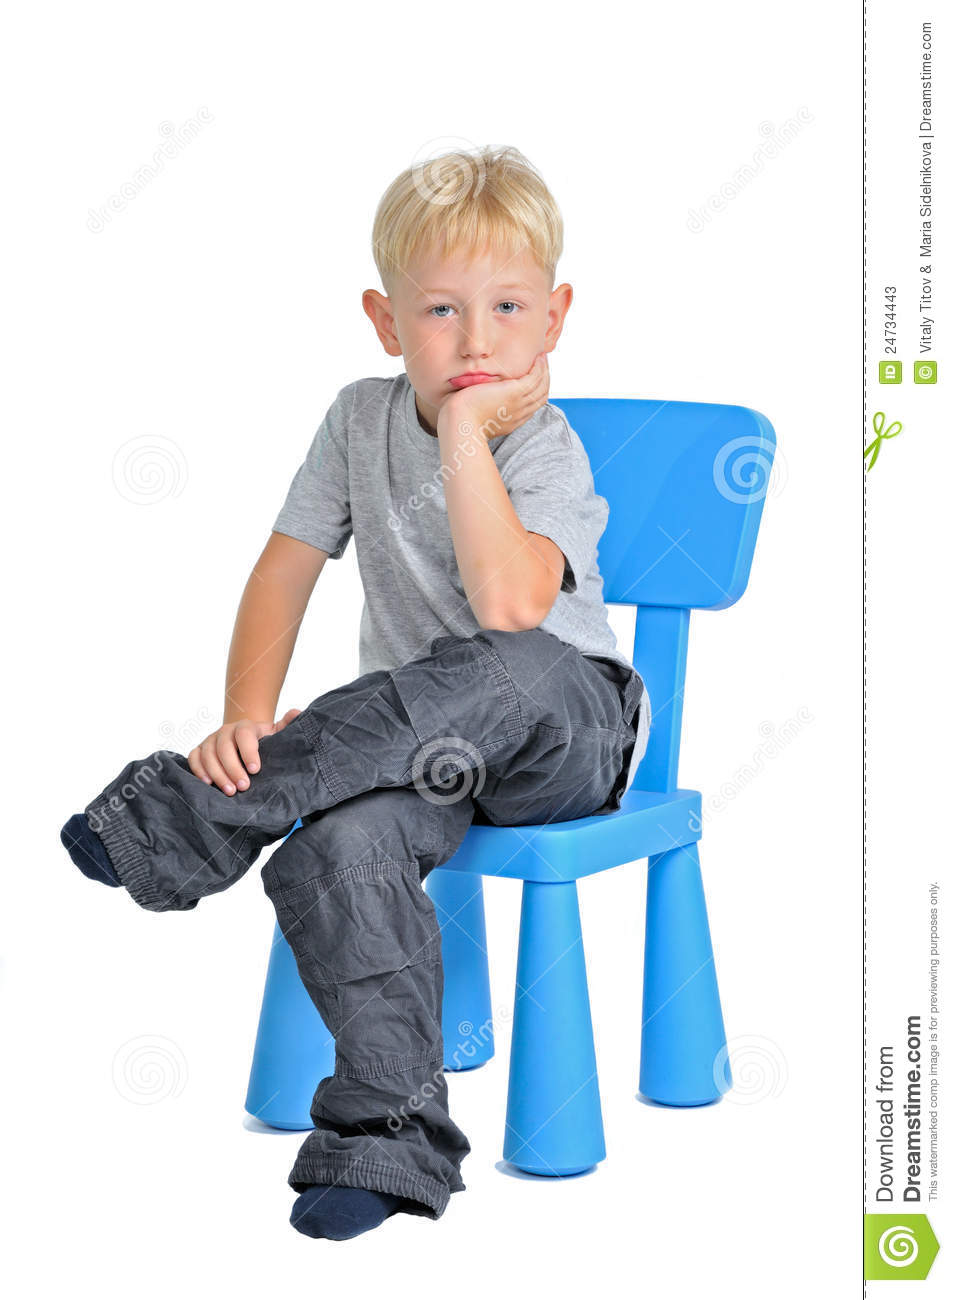 Sad Boy Sitting On A Chair Stock Photos - Image: 24734443